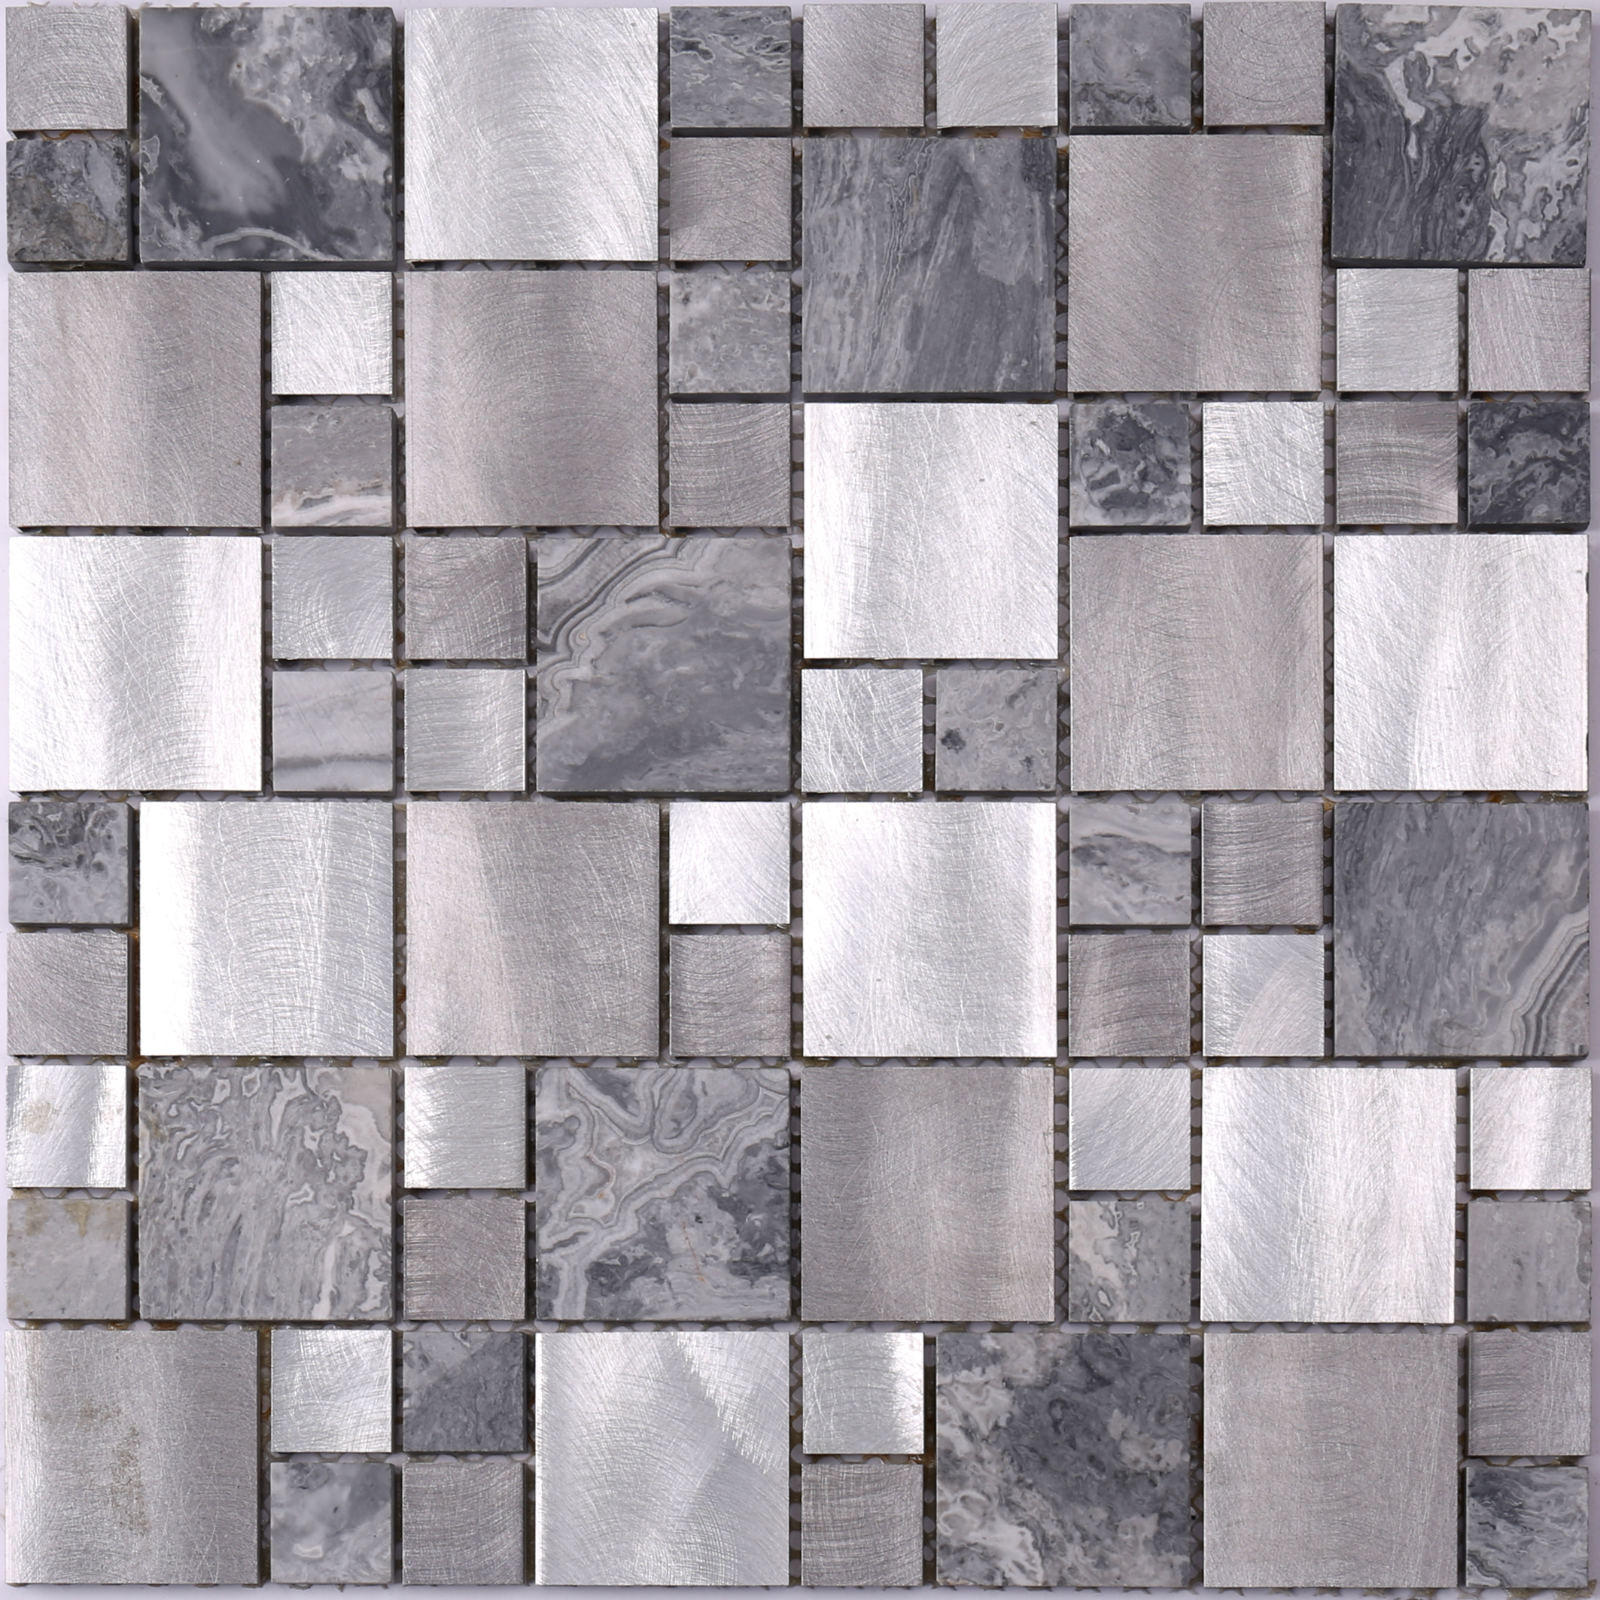 Heng Xing-Oem Odm Metal Tile Backsplash, Metal Ceiling Tiles | Heng Xing-1